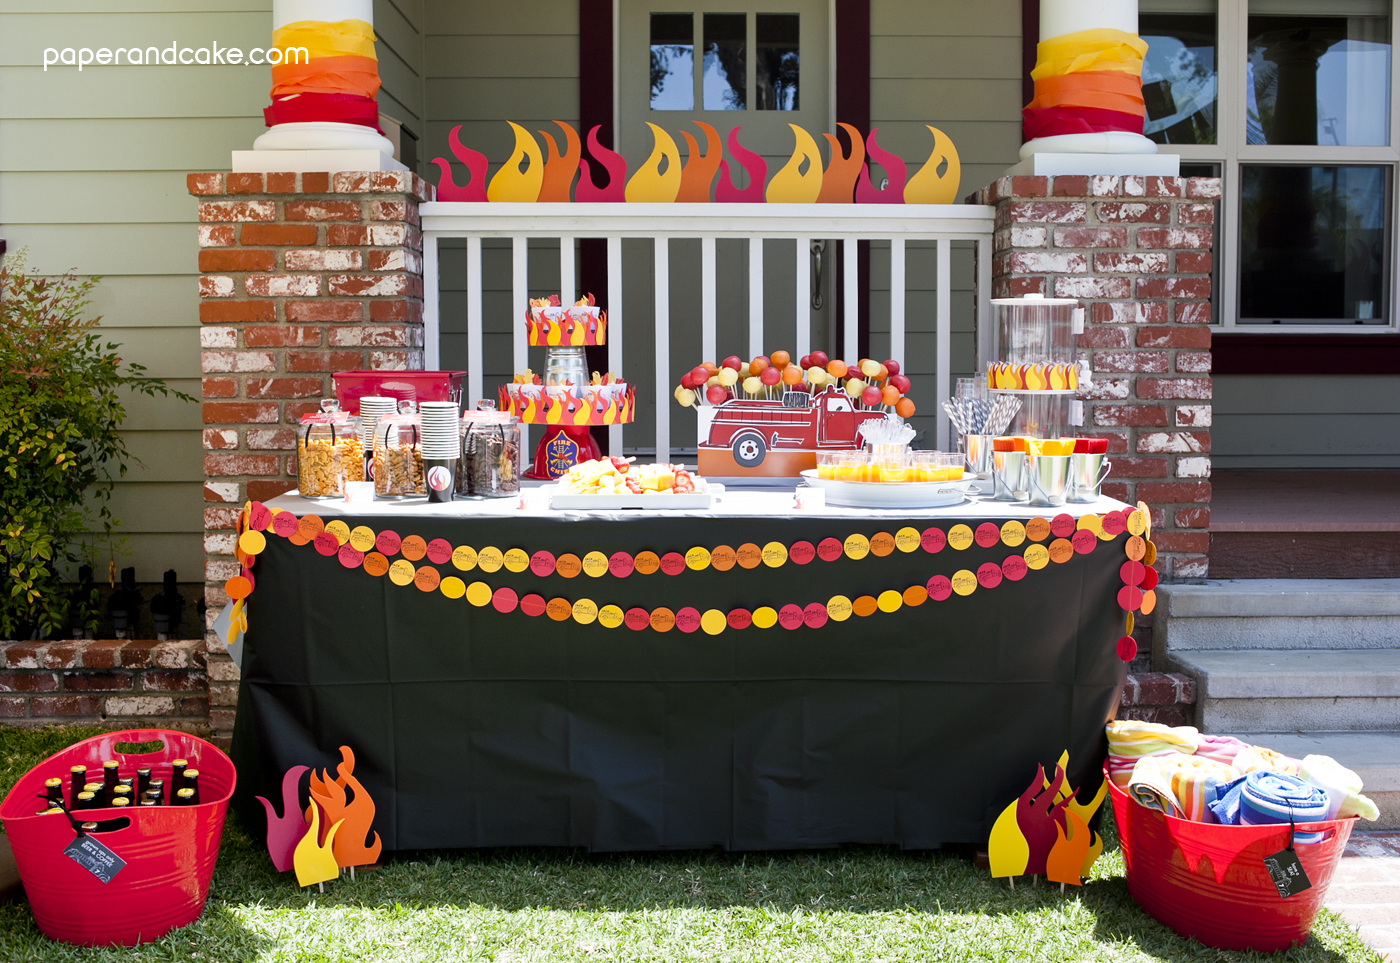 Fire truck printable birthday party paper and cake